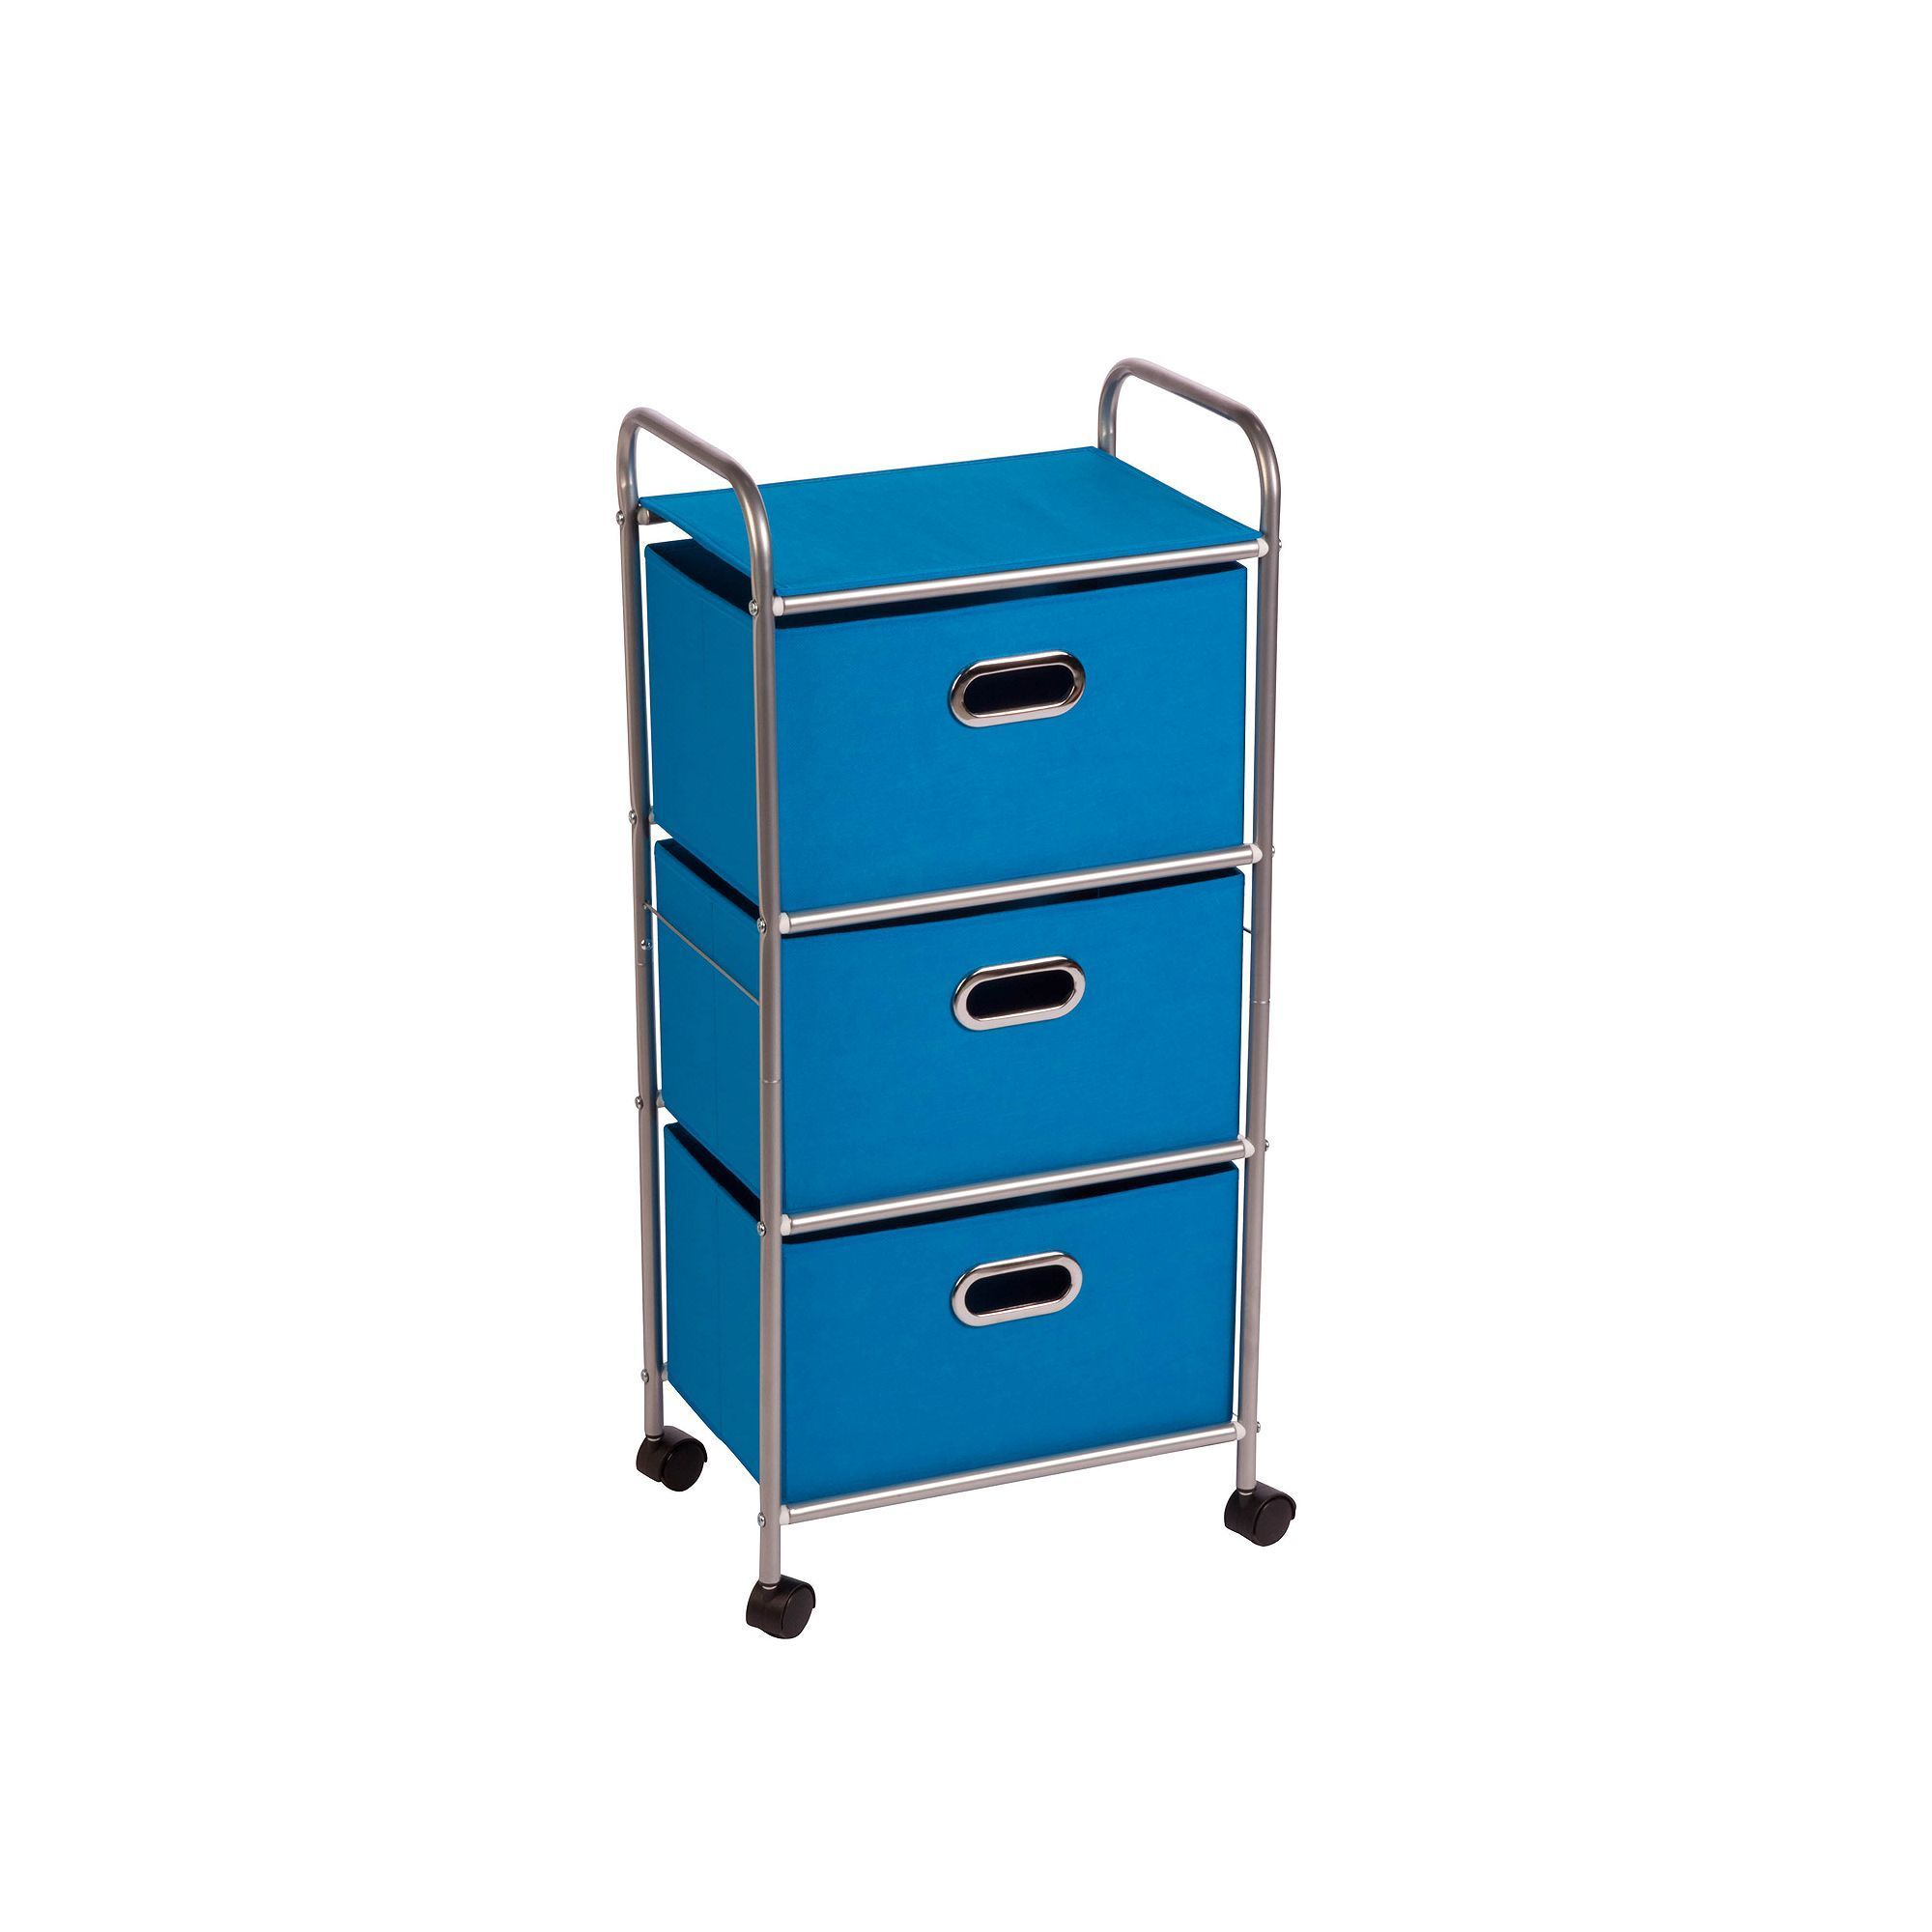 cart drawers great sterilite for this two extra rolling in office has closet ultra organization the drawer or pin is your white storage whether